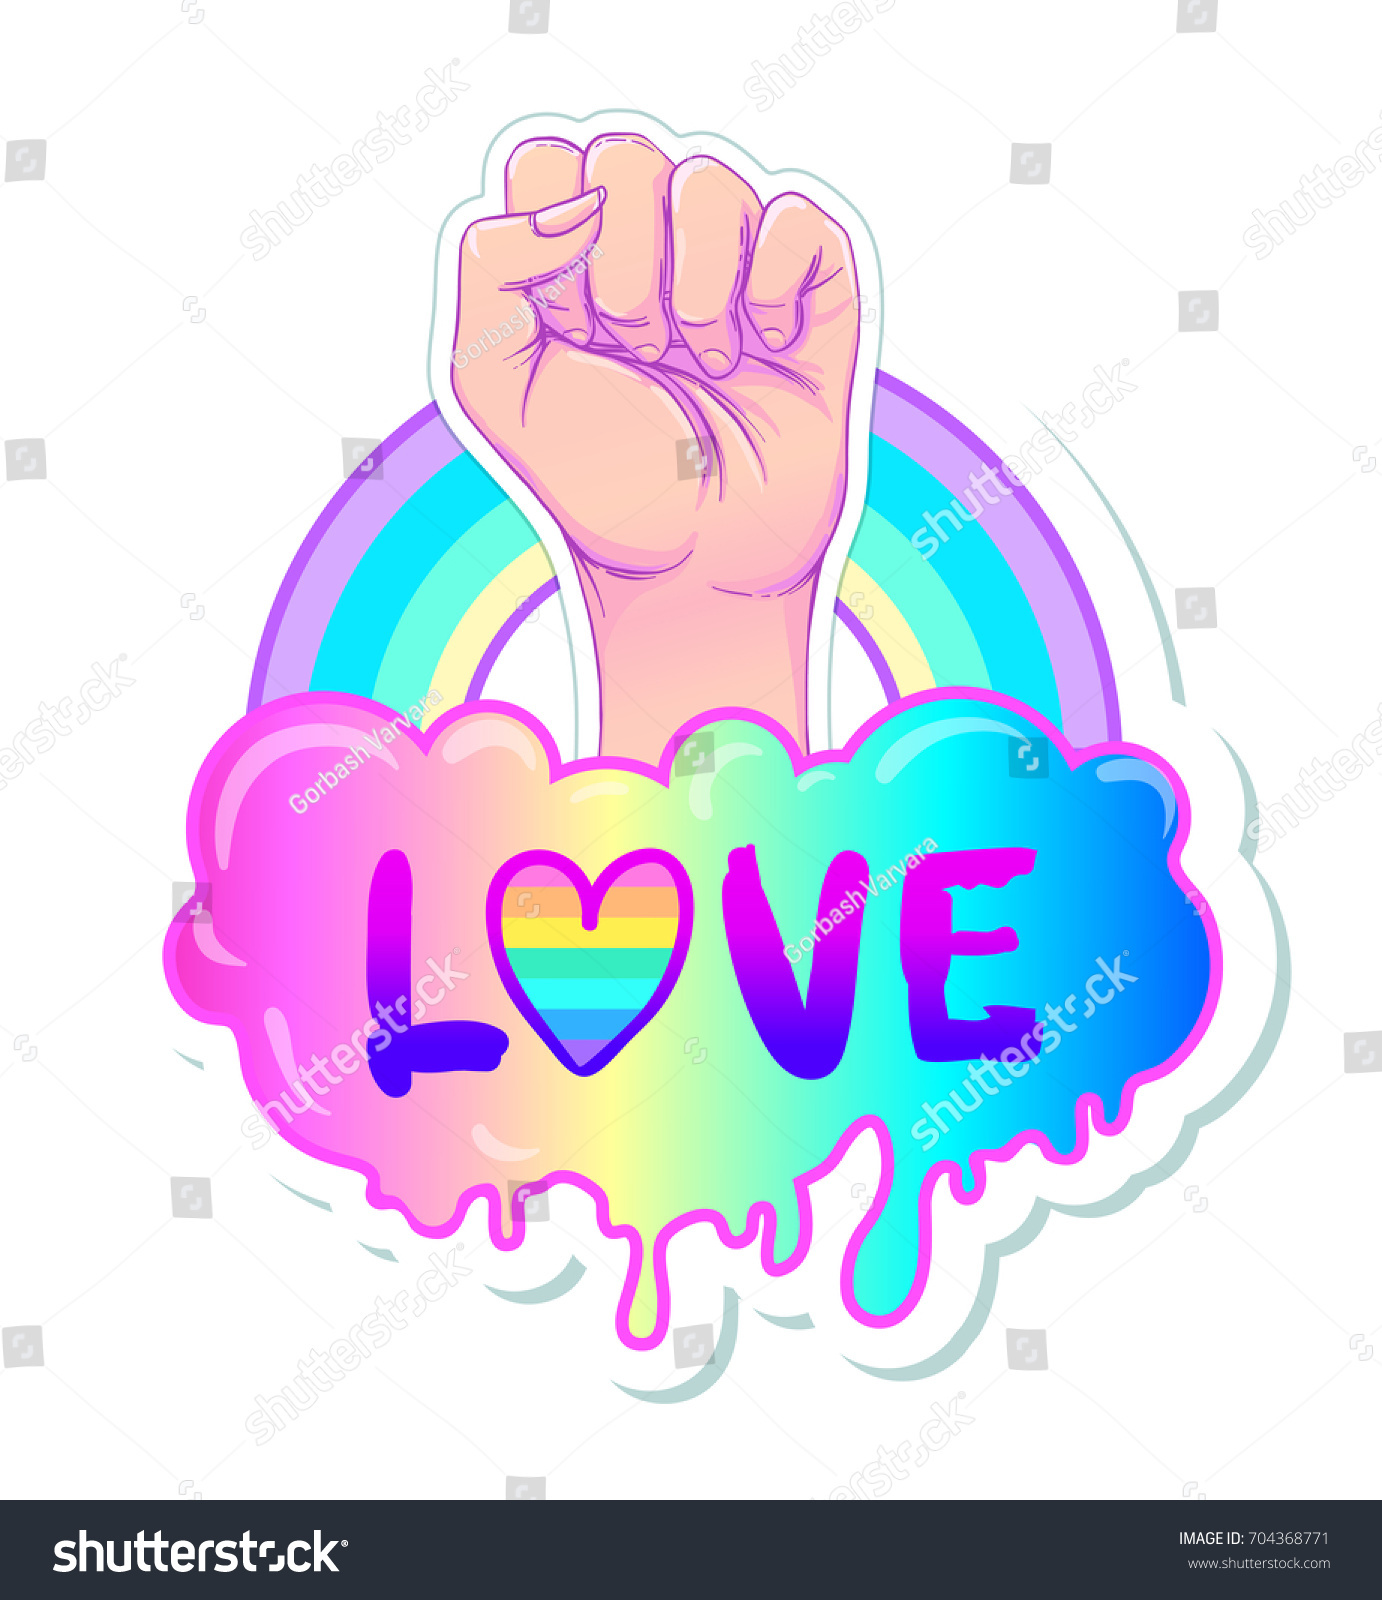 Equal love. Inspirational Gay Pride poster with rainbow spectrum colors.  Homosexuality emblem. LGBT rights concept. Sticker, patch, poster graphic  design.